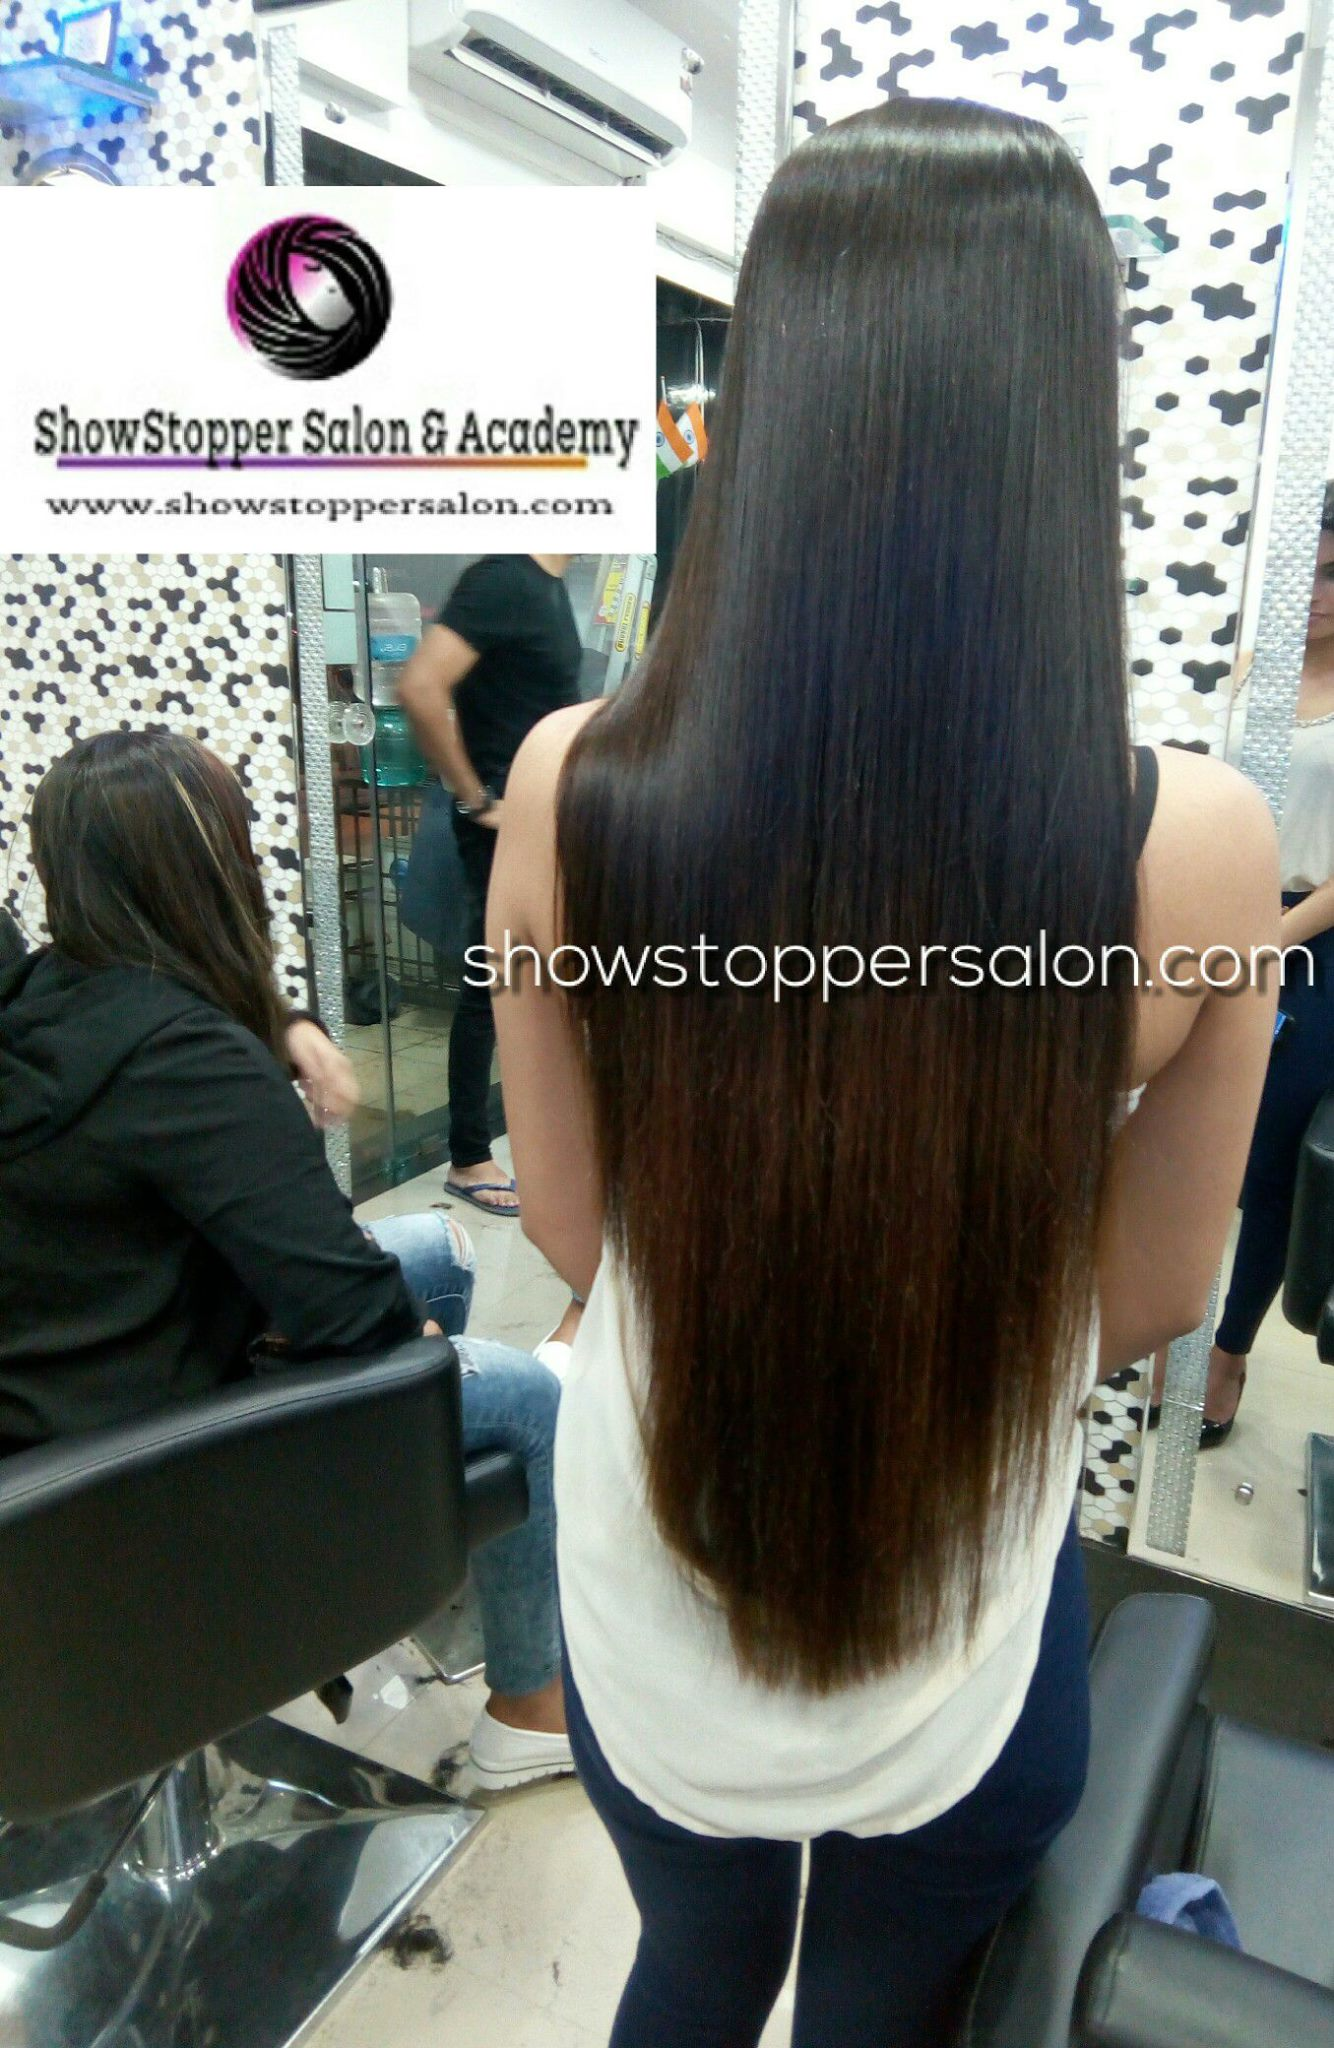 after long black showstopper unisex hair salon & academy mira road